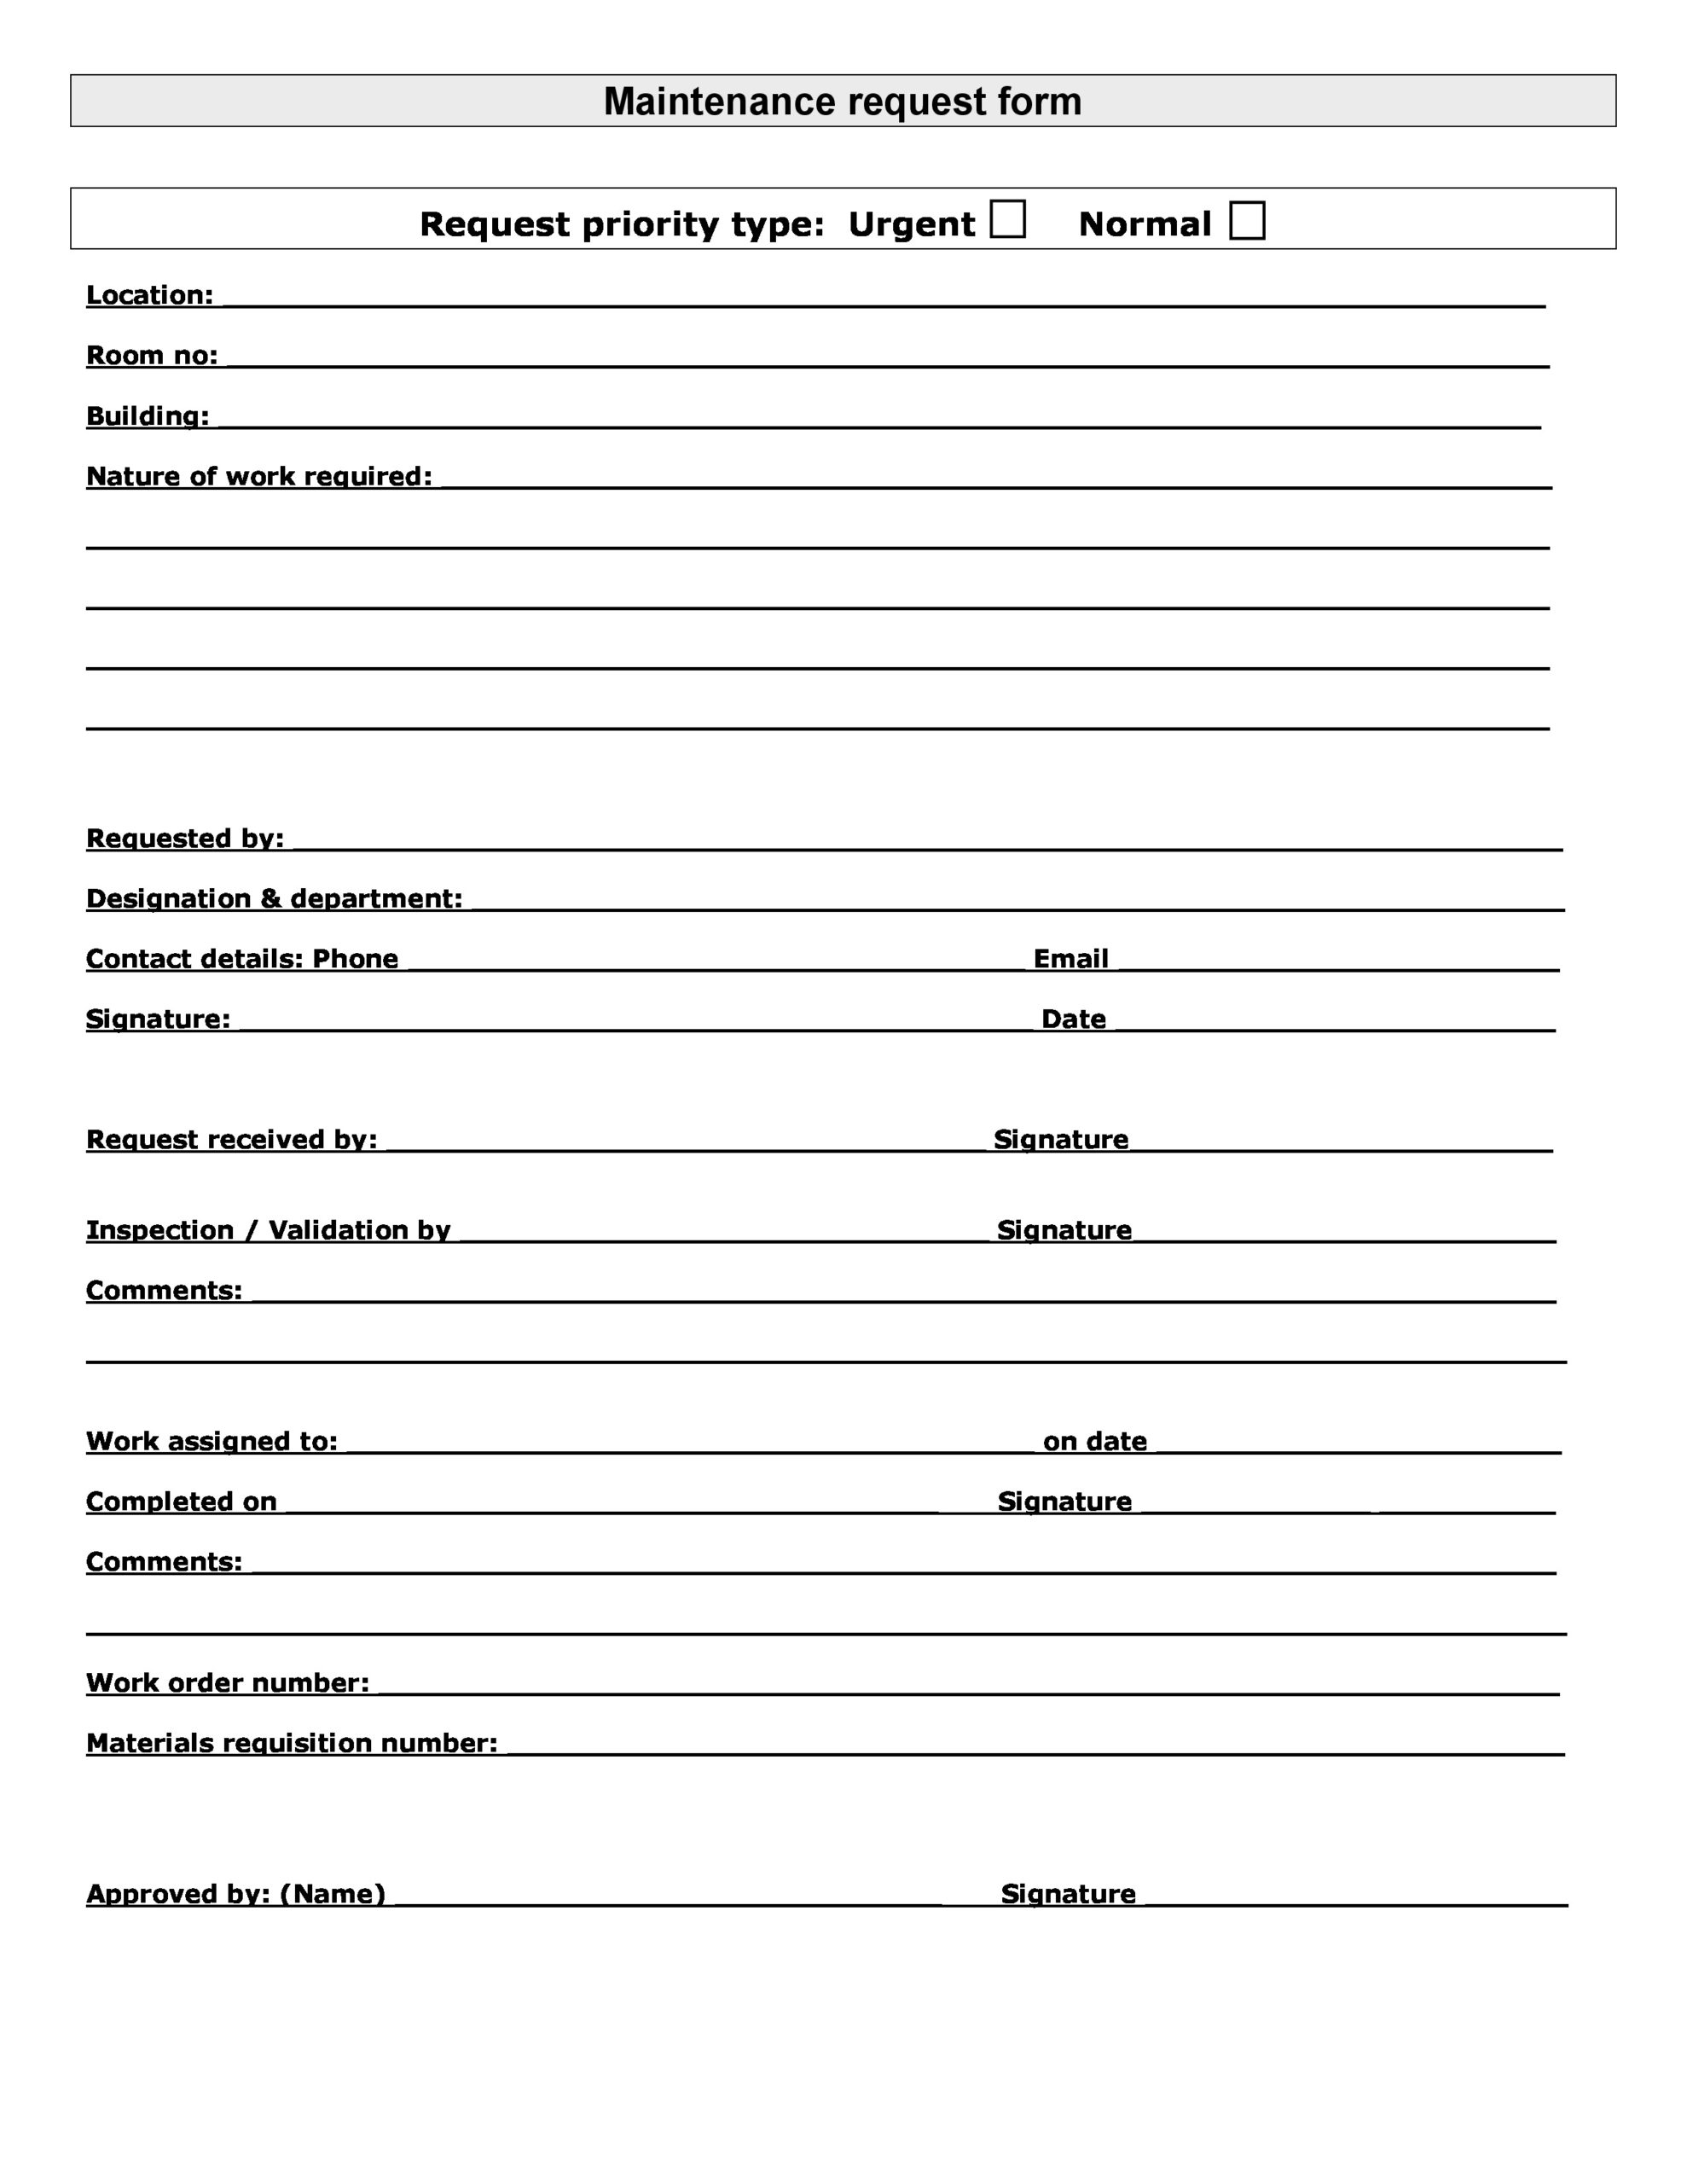 Free maintenance request form 25